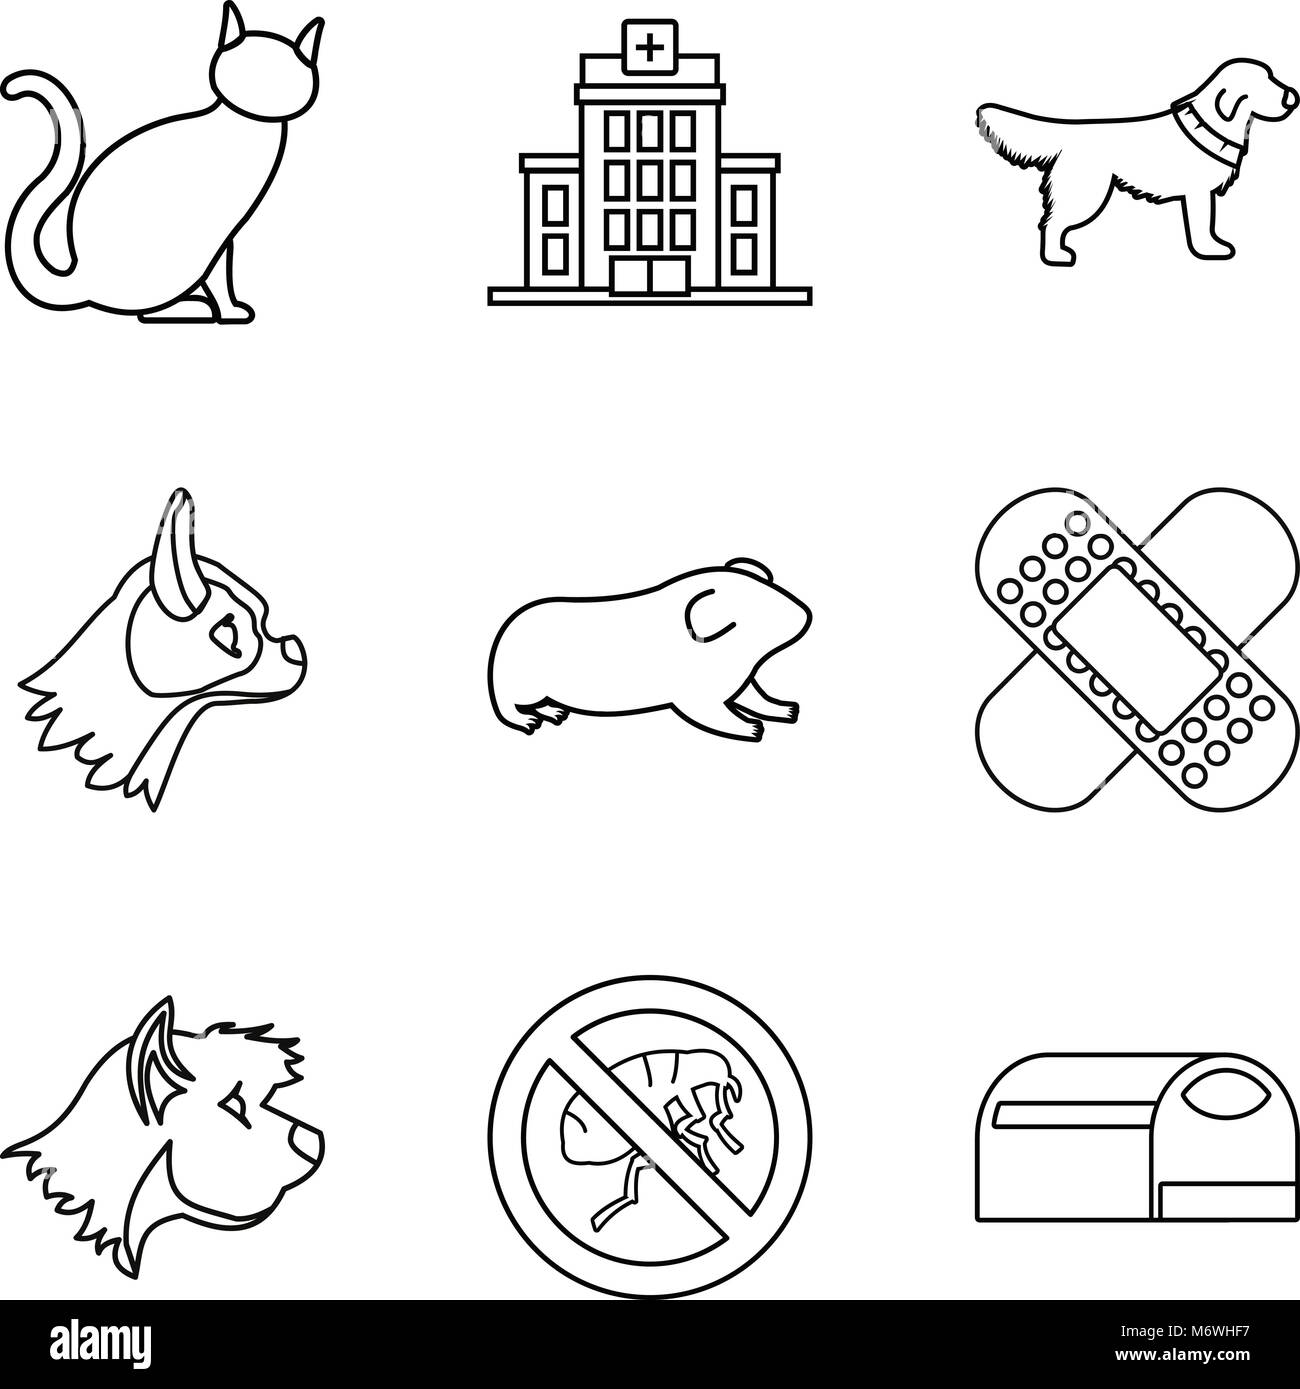 Veterinary surgeon icons set, outline style - Stock Image